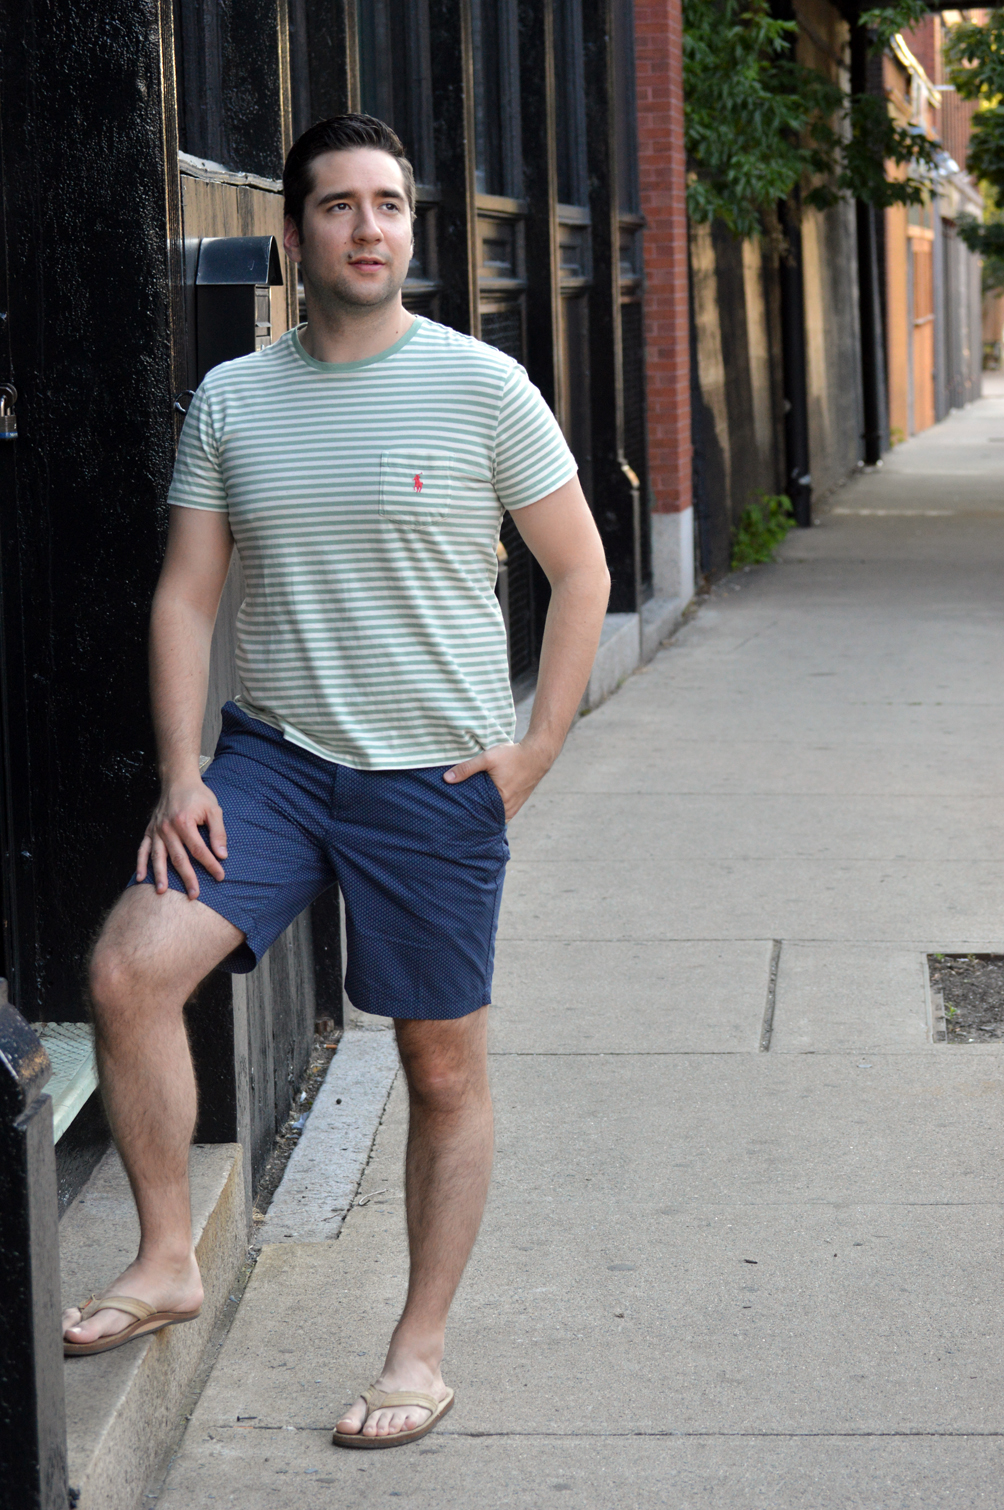 striped shirt and pattern shorts summer outfit inspiration